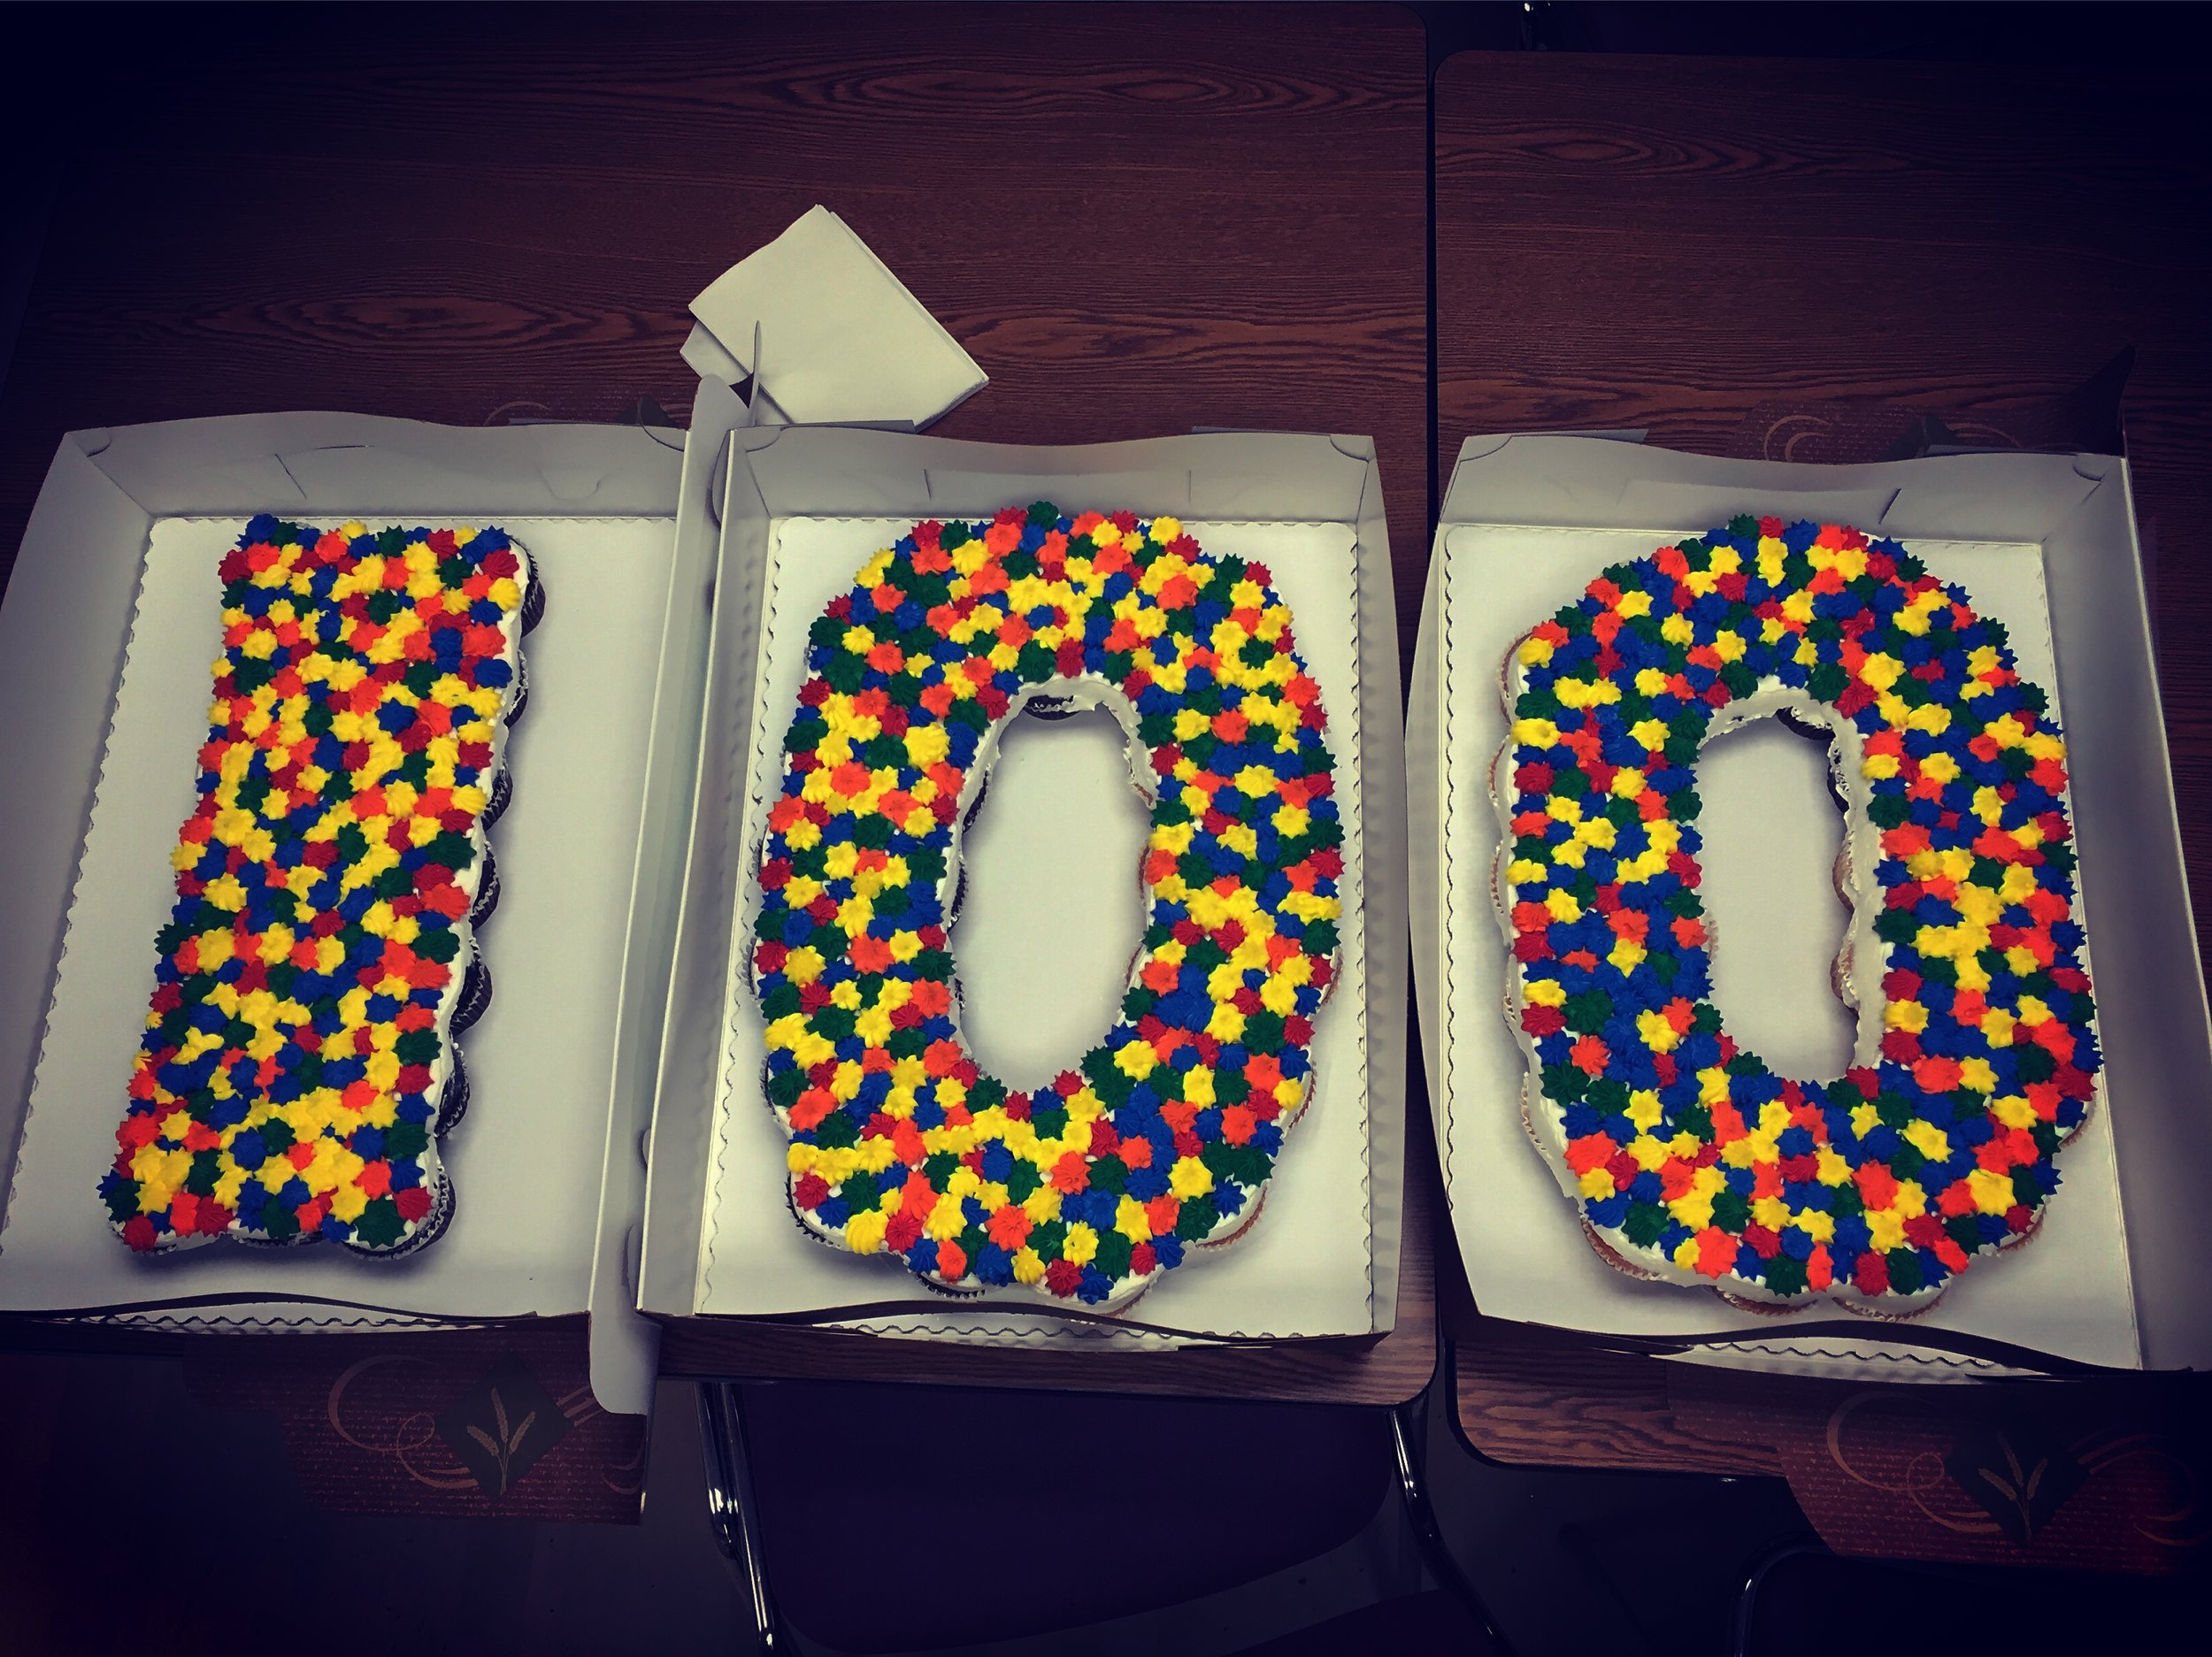 100 DAYS OLD! Another excuse to celebrate and give the NICU staff a sugar high